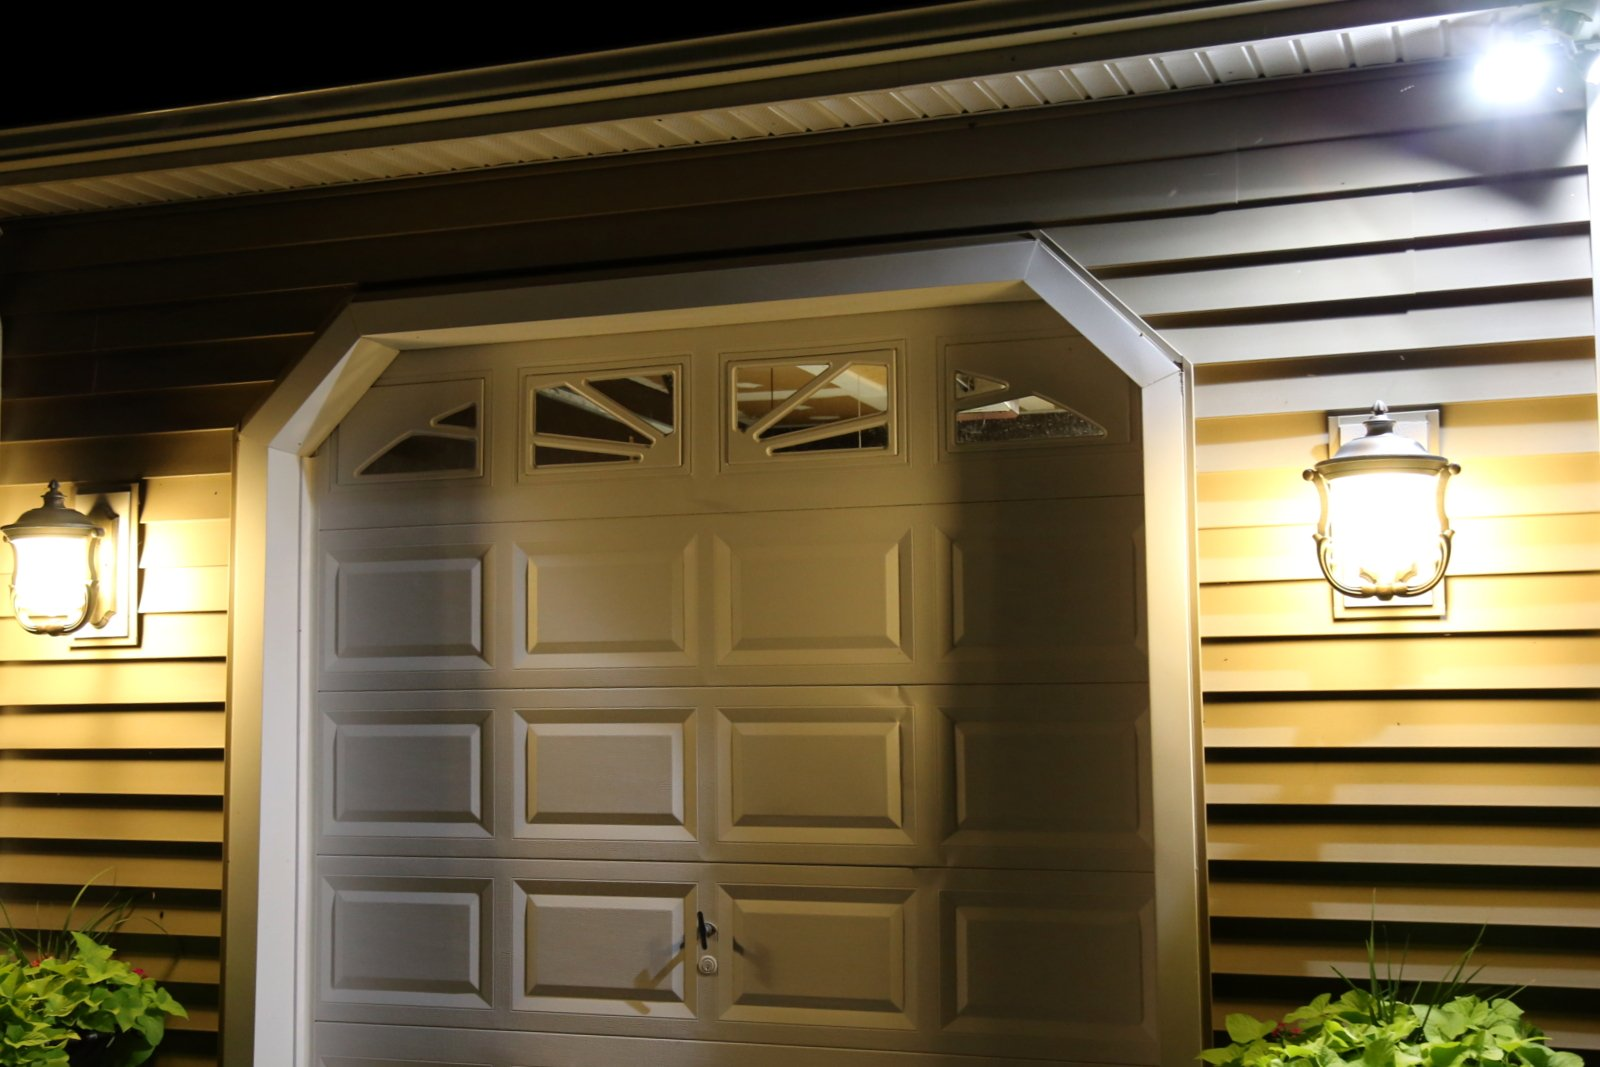 Electrical company for outdoor lighting in Crofton